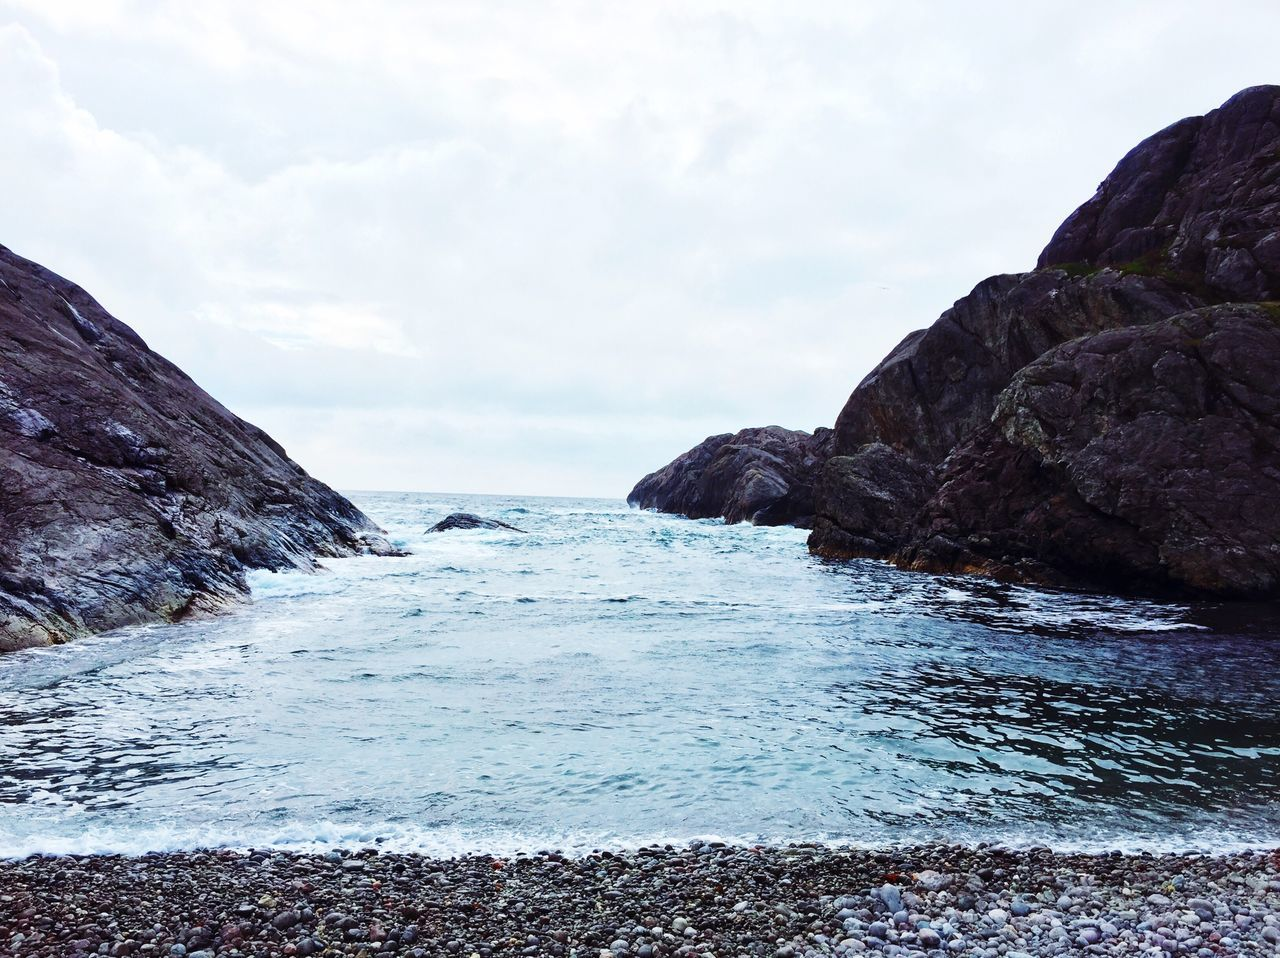 nature, sea, rock - object, water, sky, beauty in nature, tranquility, no people, outdoors, scenics, tranquil scene, day, horizon over water